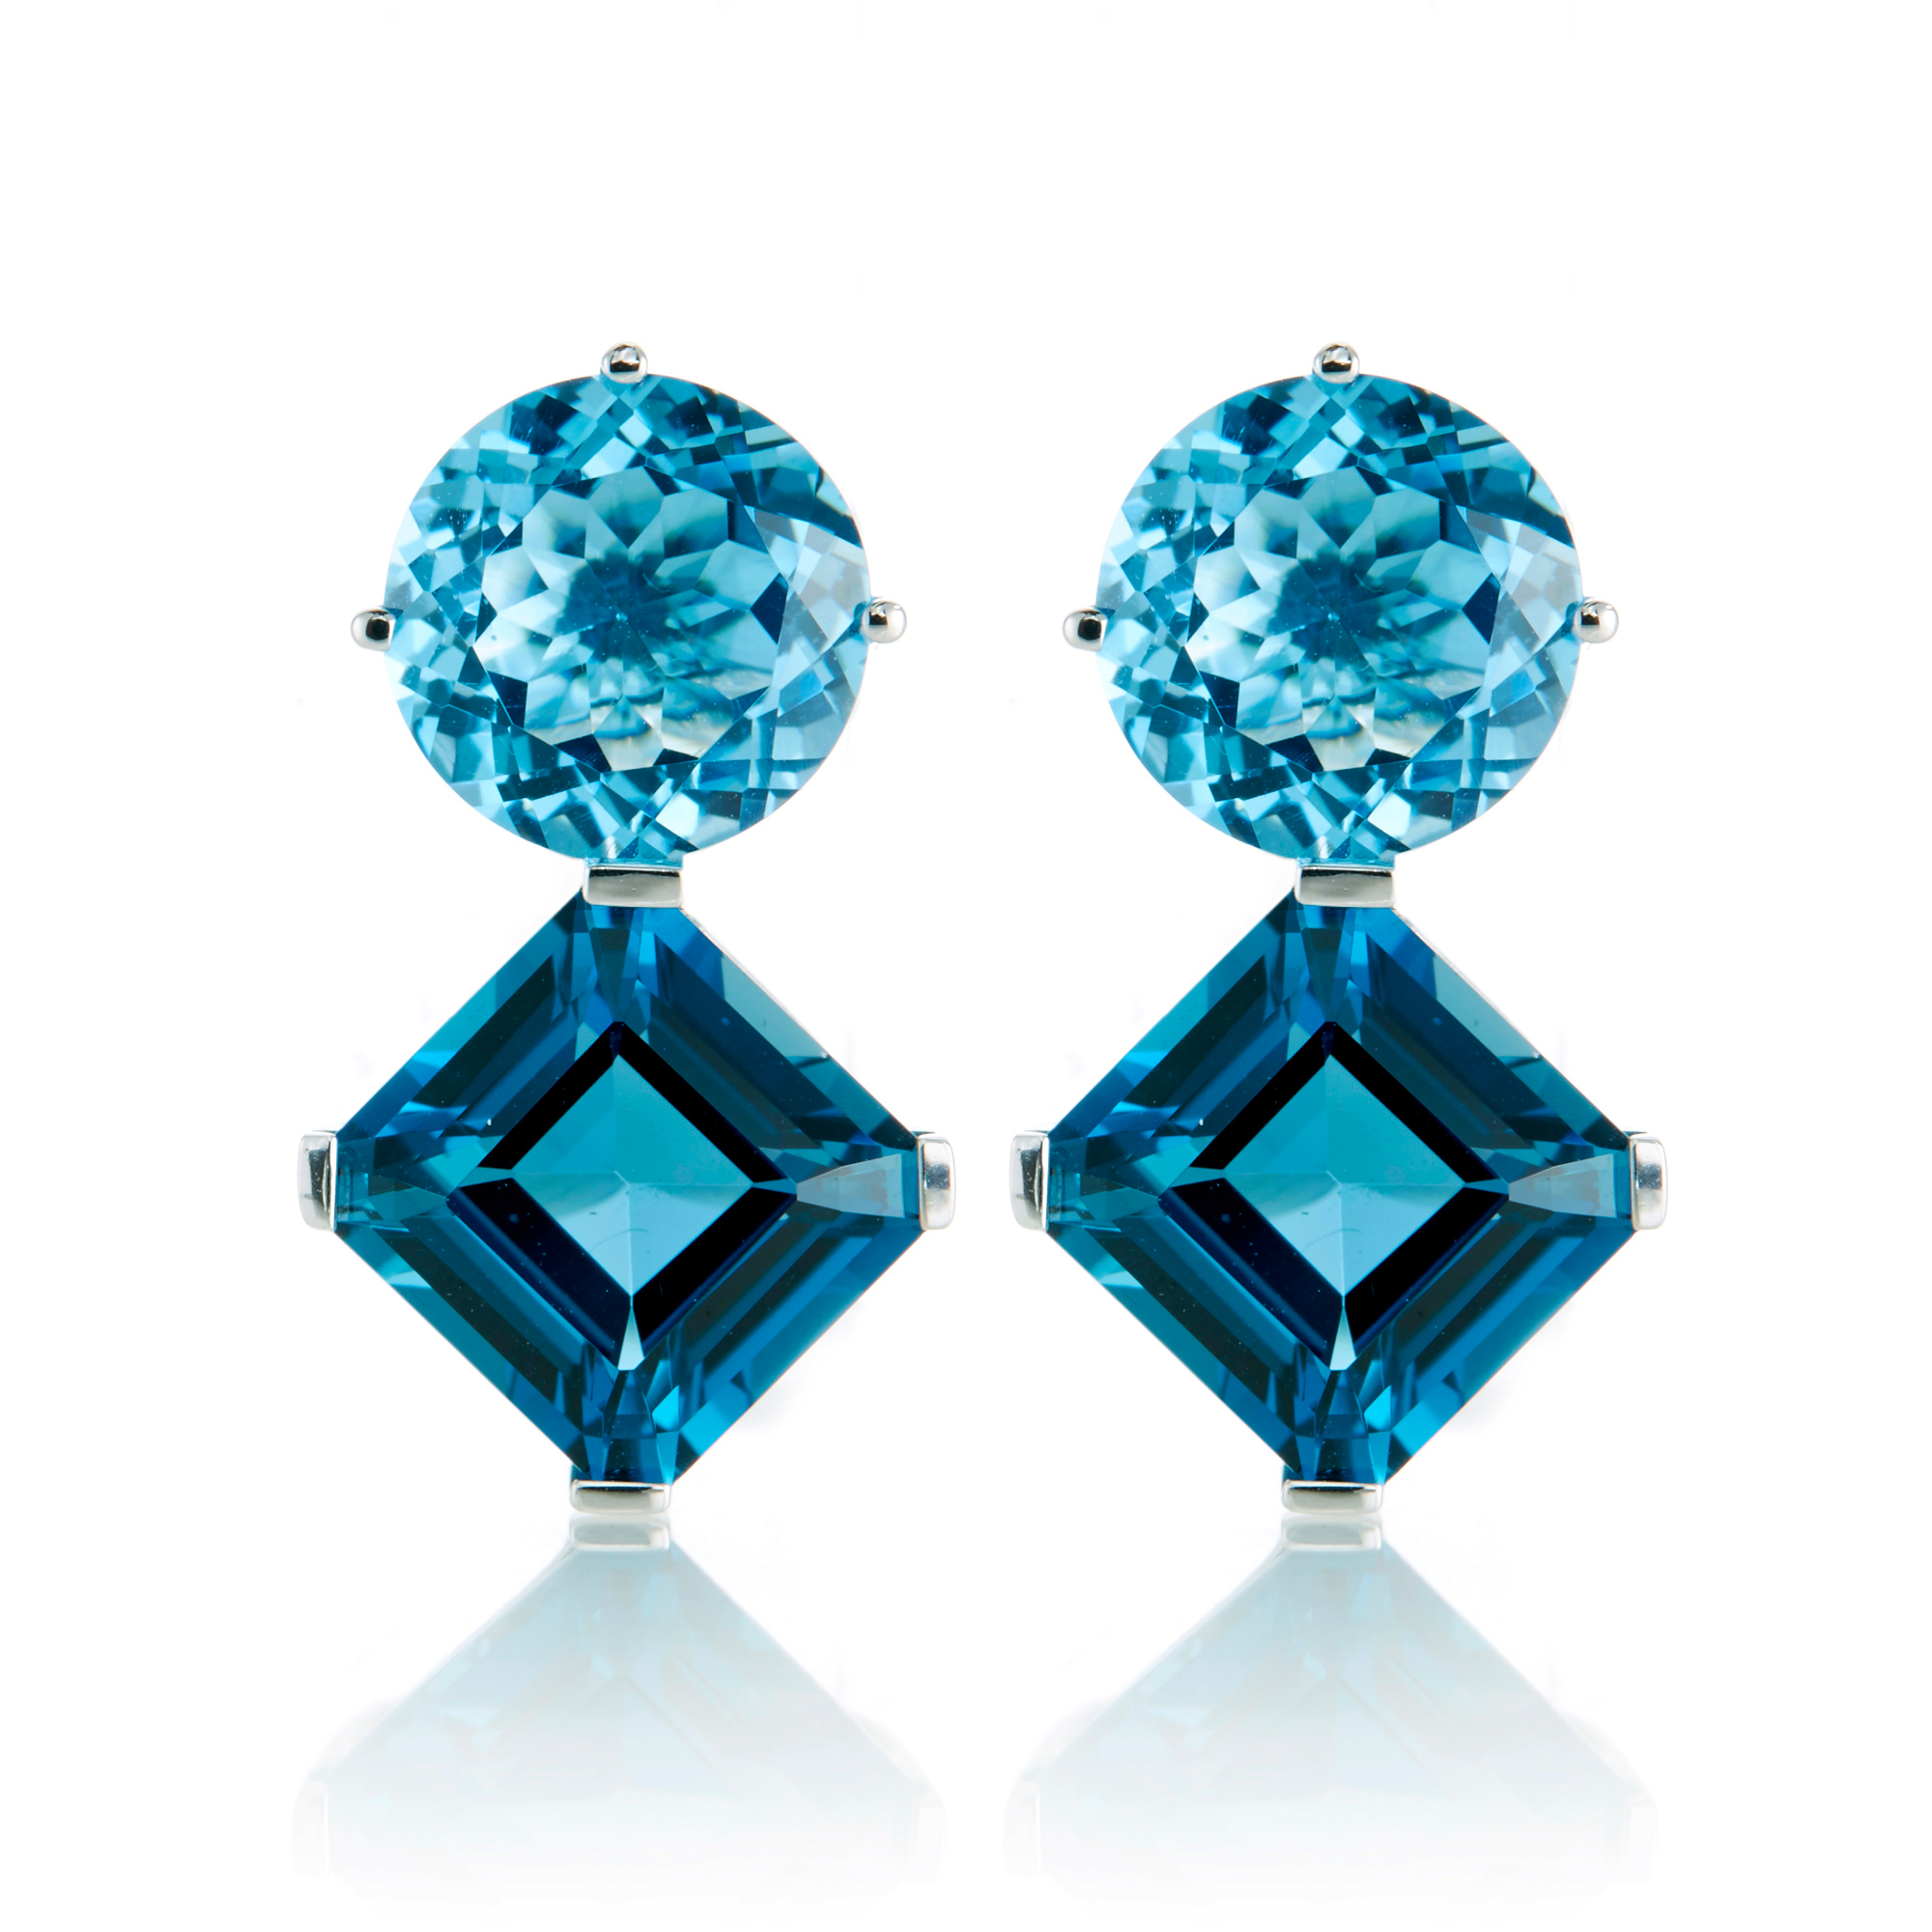 Gump's Round & Square Blue Topaz Earrings